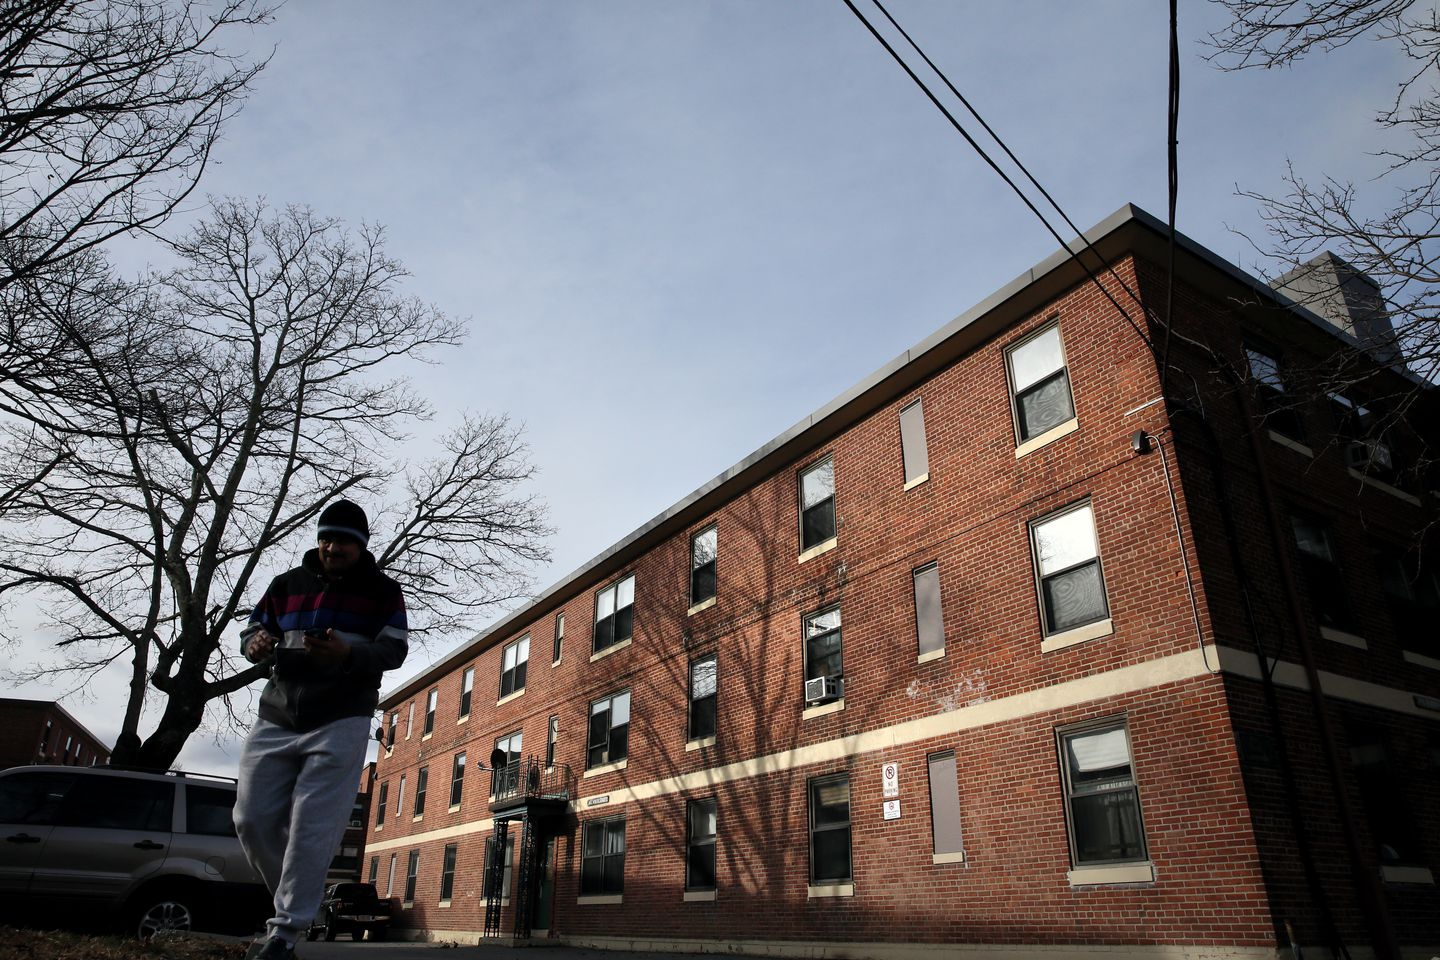 A man departed the Somerville Housing Authority's Clarendon Hill complex where redevelopment plans are on hold.